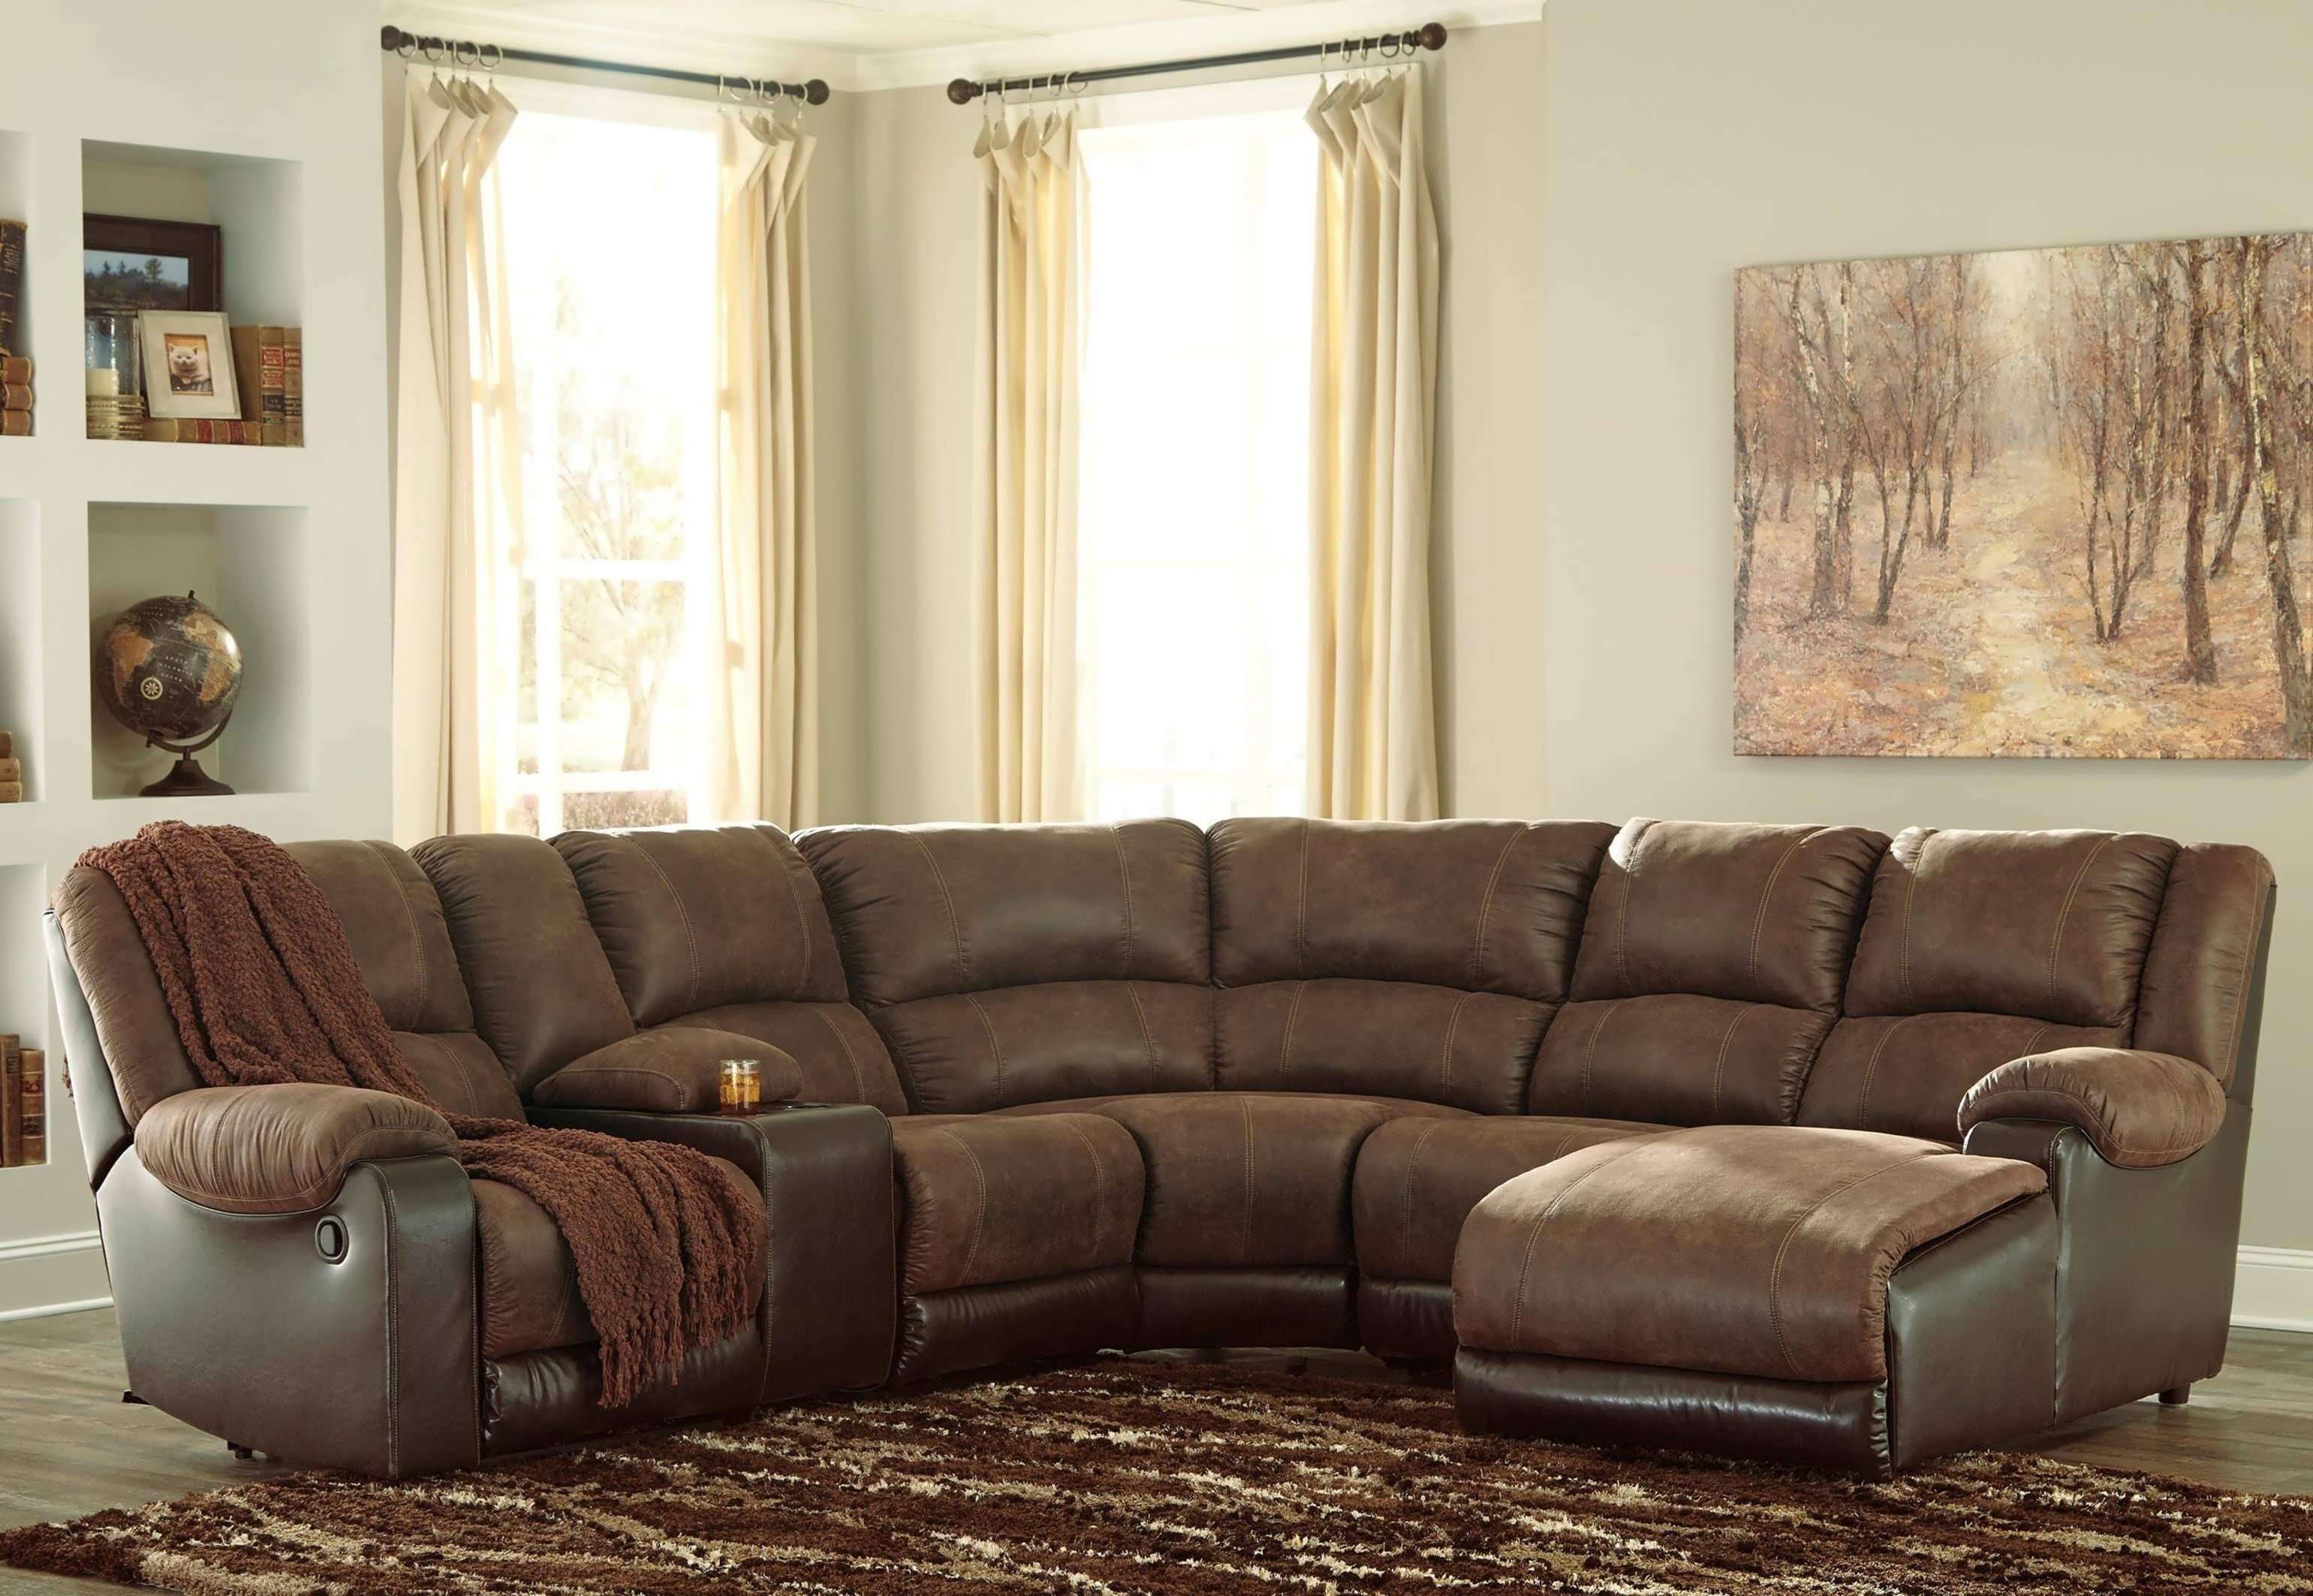 Fashionable Sofa : L Sofa Sectional With Chaise And Recliner Sectional Sofas Within Sectional Sofas With Chaise And Recliner (View 13 of 15)